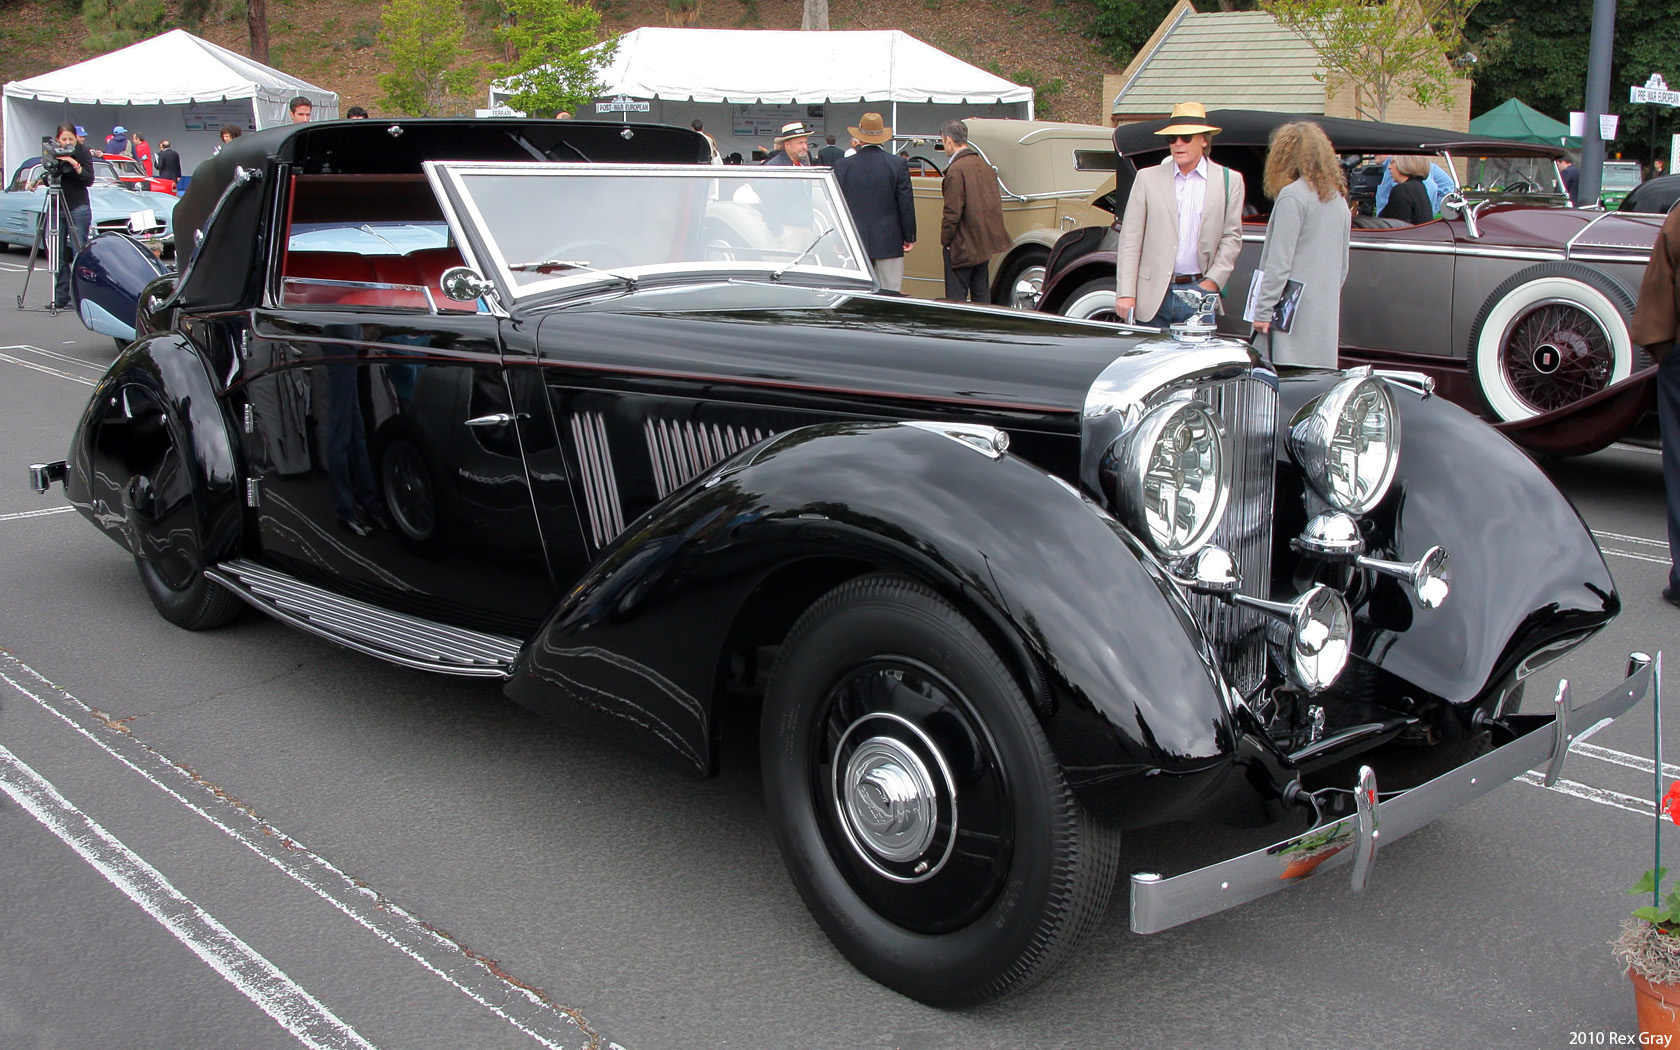 Concours D Elegance >> File:1936 Bentley 3,5 Litre.jpg - Wikimedia Commons